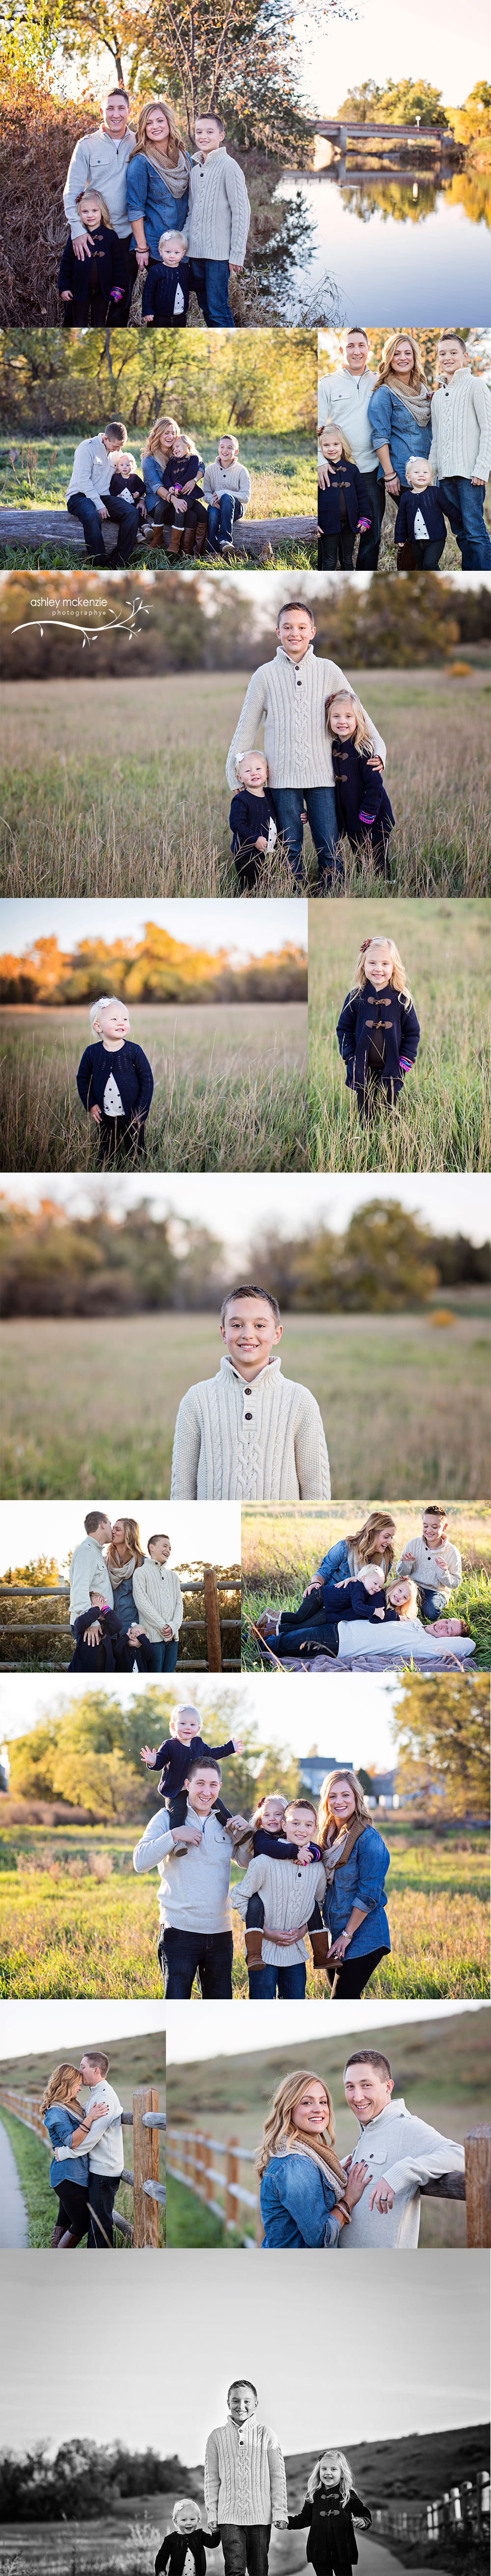 Lifestyle Family Photography by Ashley McKenzie Photography in Windsor, CO